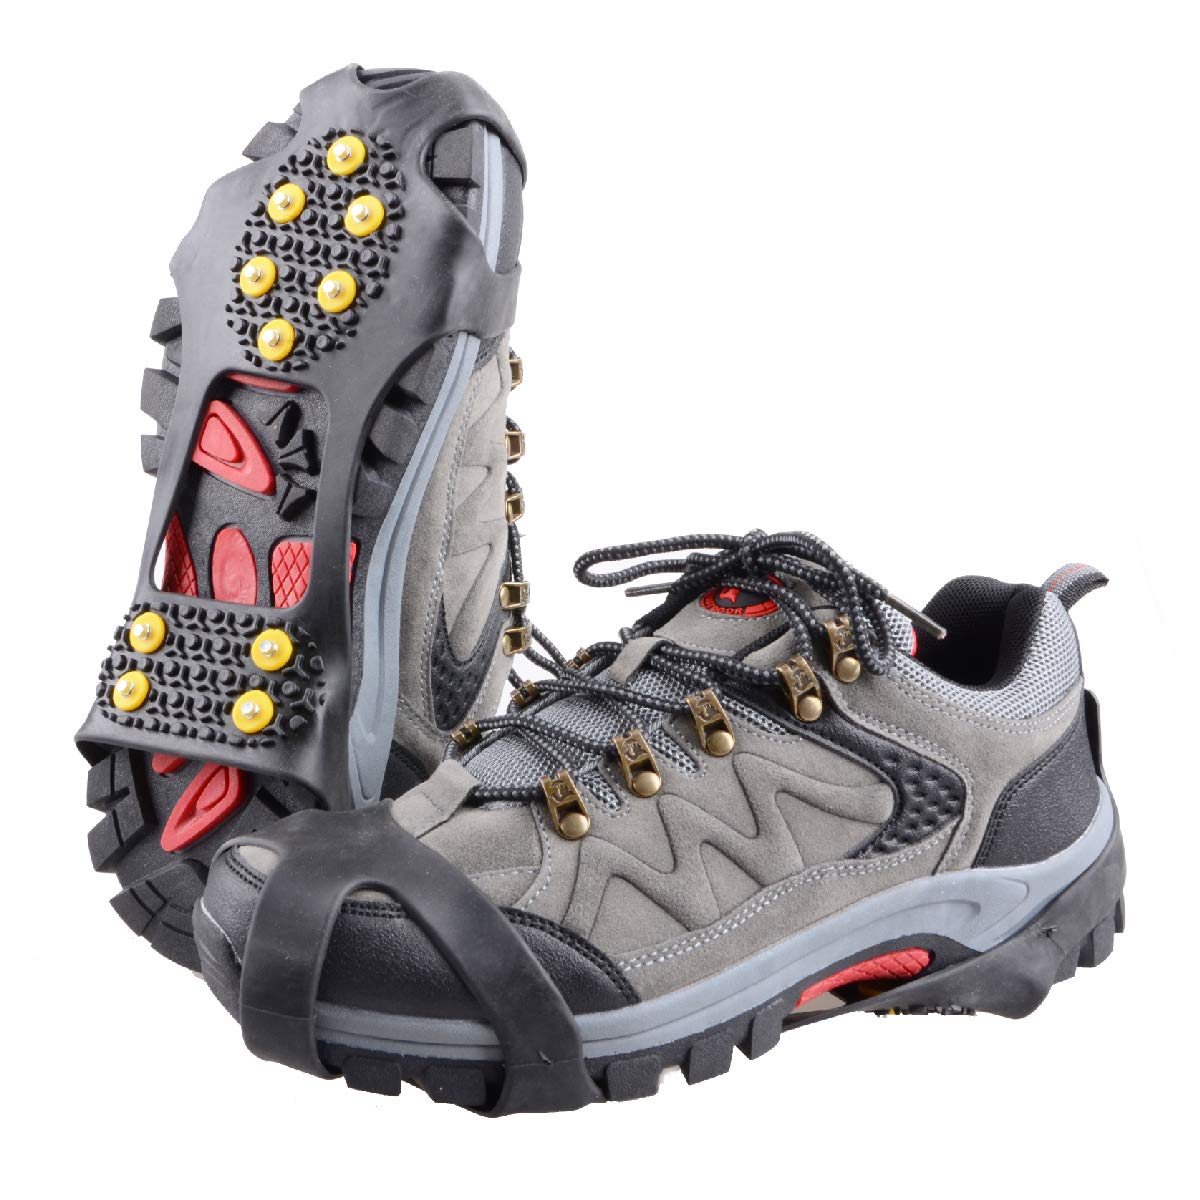 Triwonder Ice Grips 10 Teeth Anti-Slip Shoe/Boot Ice Traction Slip-on Snow Ice Spikes Crampons Cleats Stretch Footwear Traction CA-OS1001